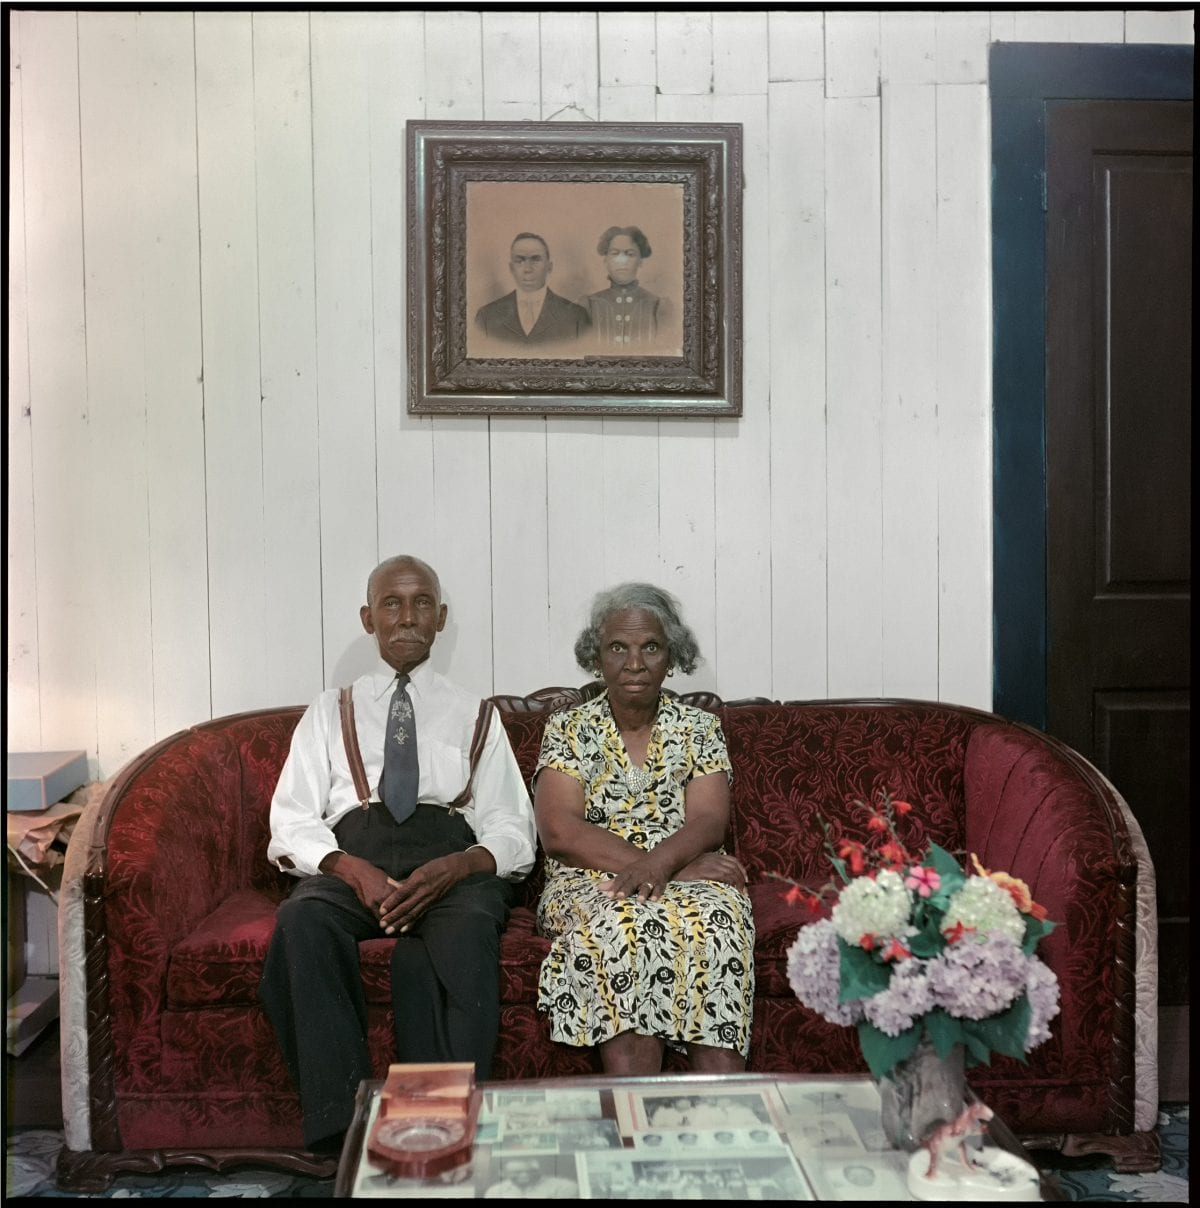 Gordon Parks (American, 1912–2006), Mr. and Mrs. Albert Thornton, Mobile, Alabama, 1956, courtesy of and copyright The Gordon Parks Foundation.